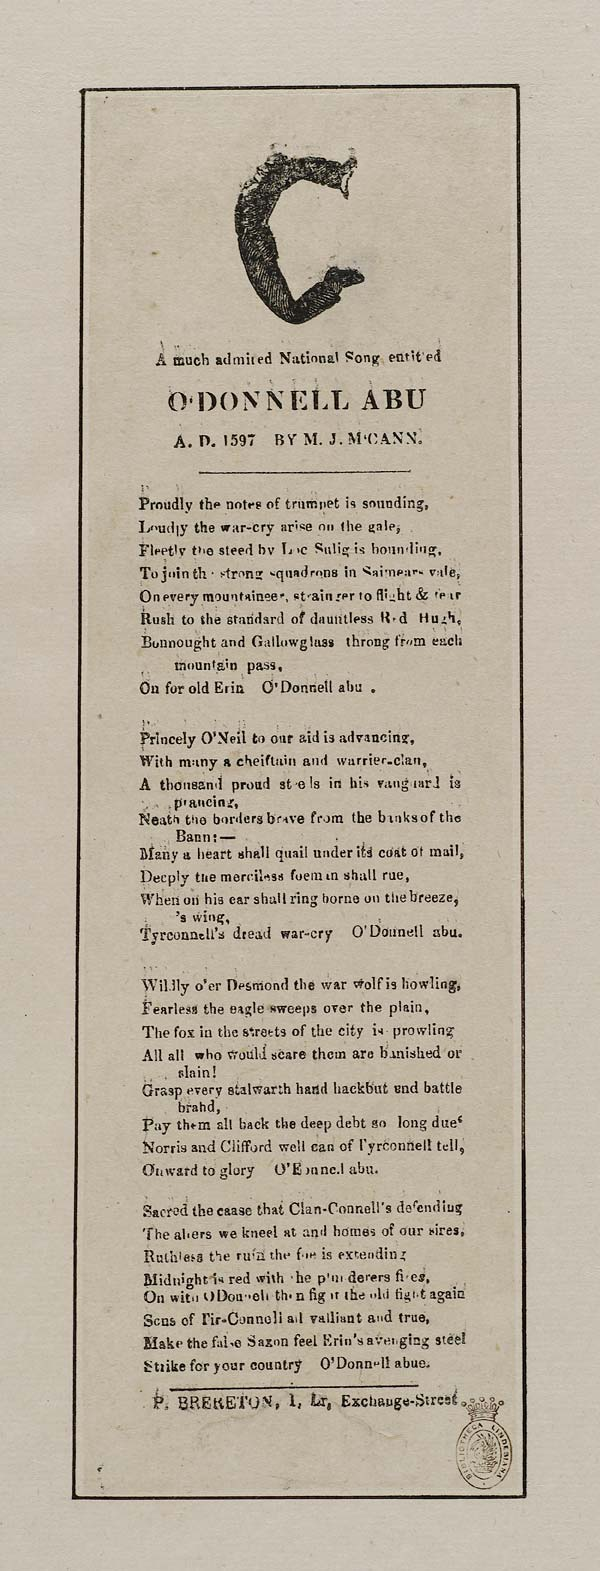 (43) Much admired national song entitled O'Donnell abu